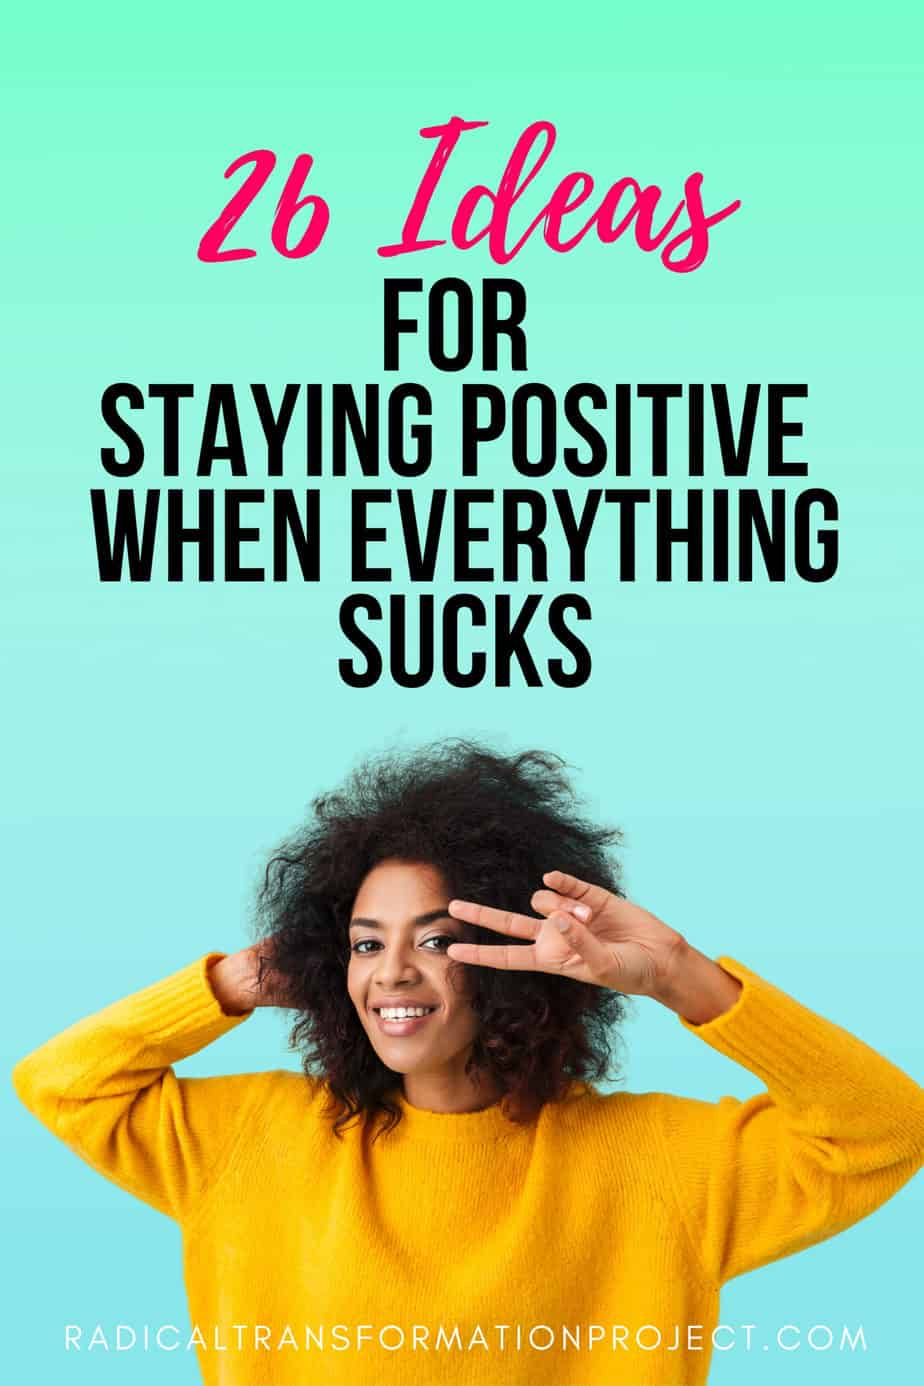 How to Stay Positive When Everything Sucks